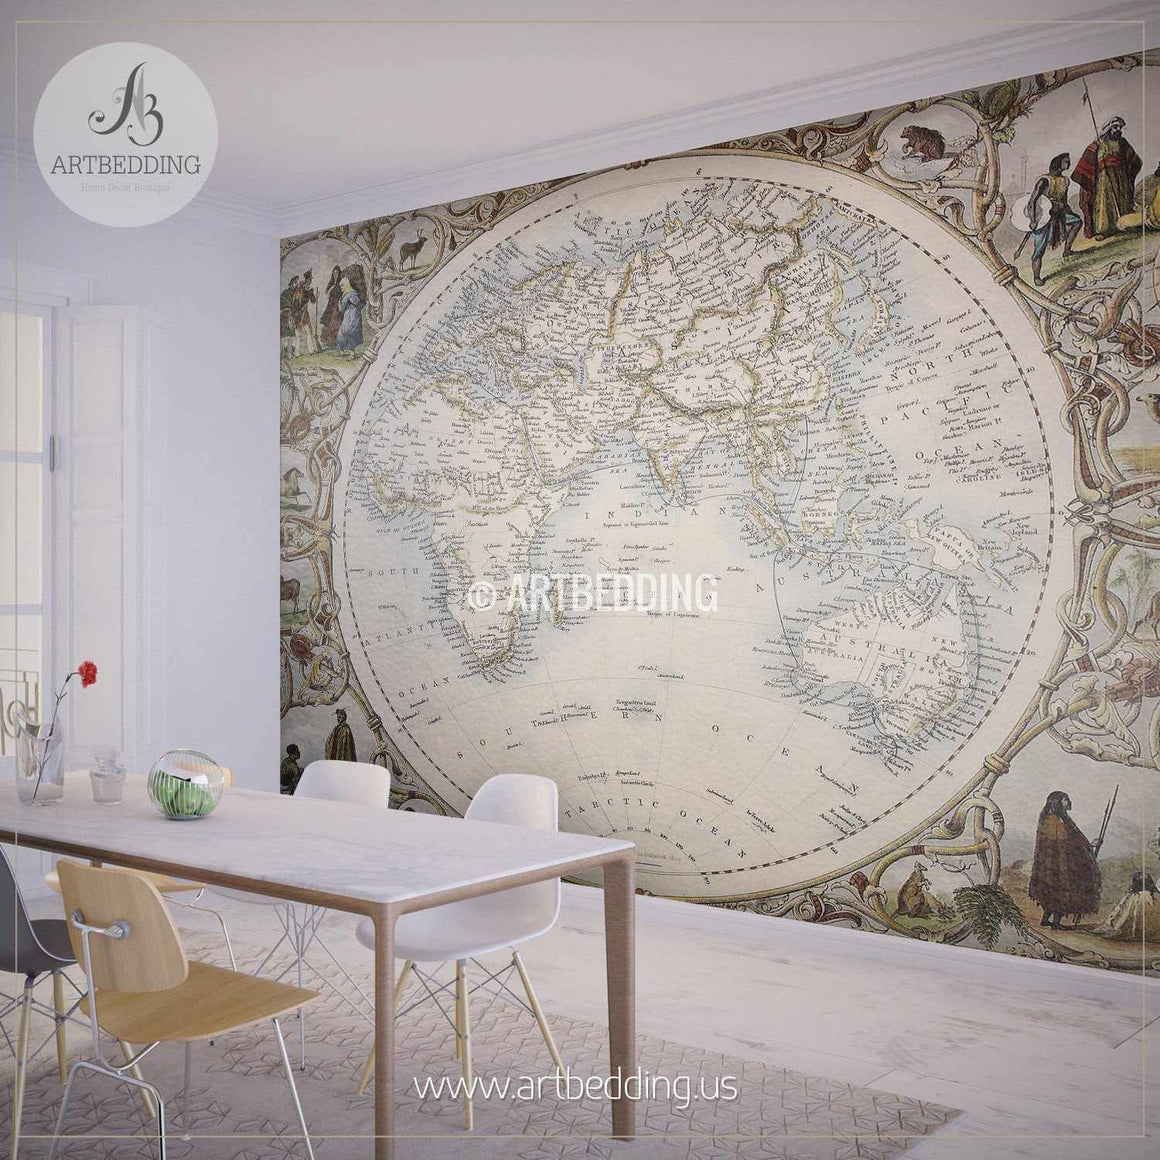 Old Oriental Hemisphere Map (1851) Wall Mural, Self Adhesive Peel & Stick Photo Mural, Atlas wall mural, mural home decor wall mural